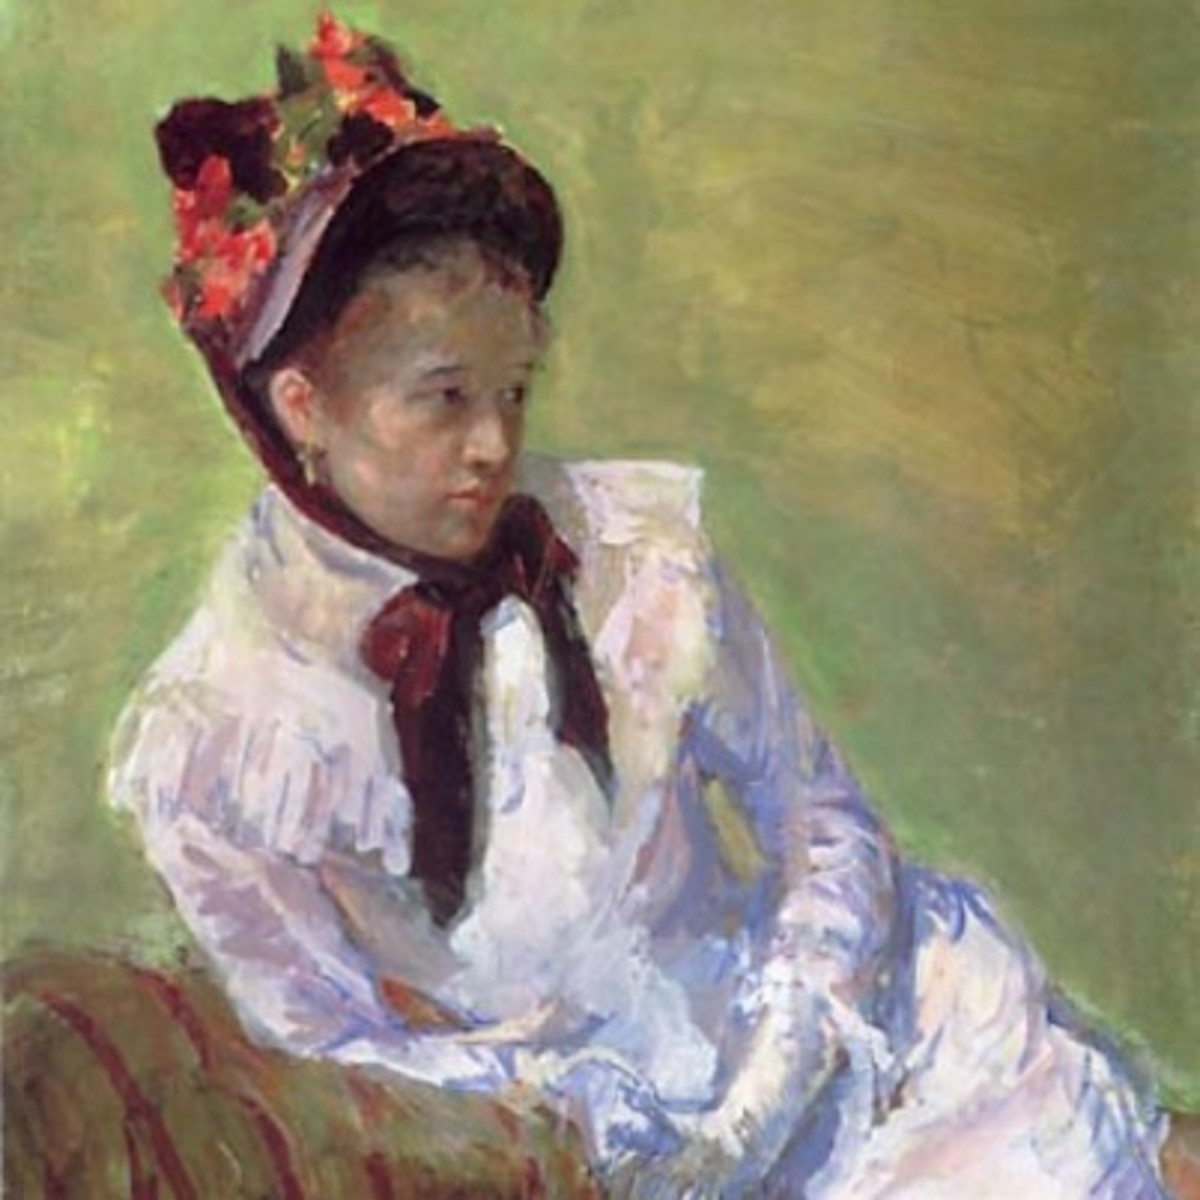 a biography of mary cassatt an american painter Mary stevenson cassatt (/ k ə ˈ s æ t / may 22, 1844 – june 14, 1926) was an american painter and printmakershe was born in pennsylvania, but lived much of her adult life in france, where she first befriended edgar degas and later exhibited among the impressionistscassatt often created images of the social and private lives of women.